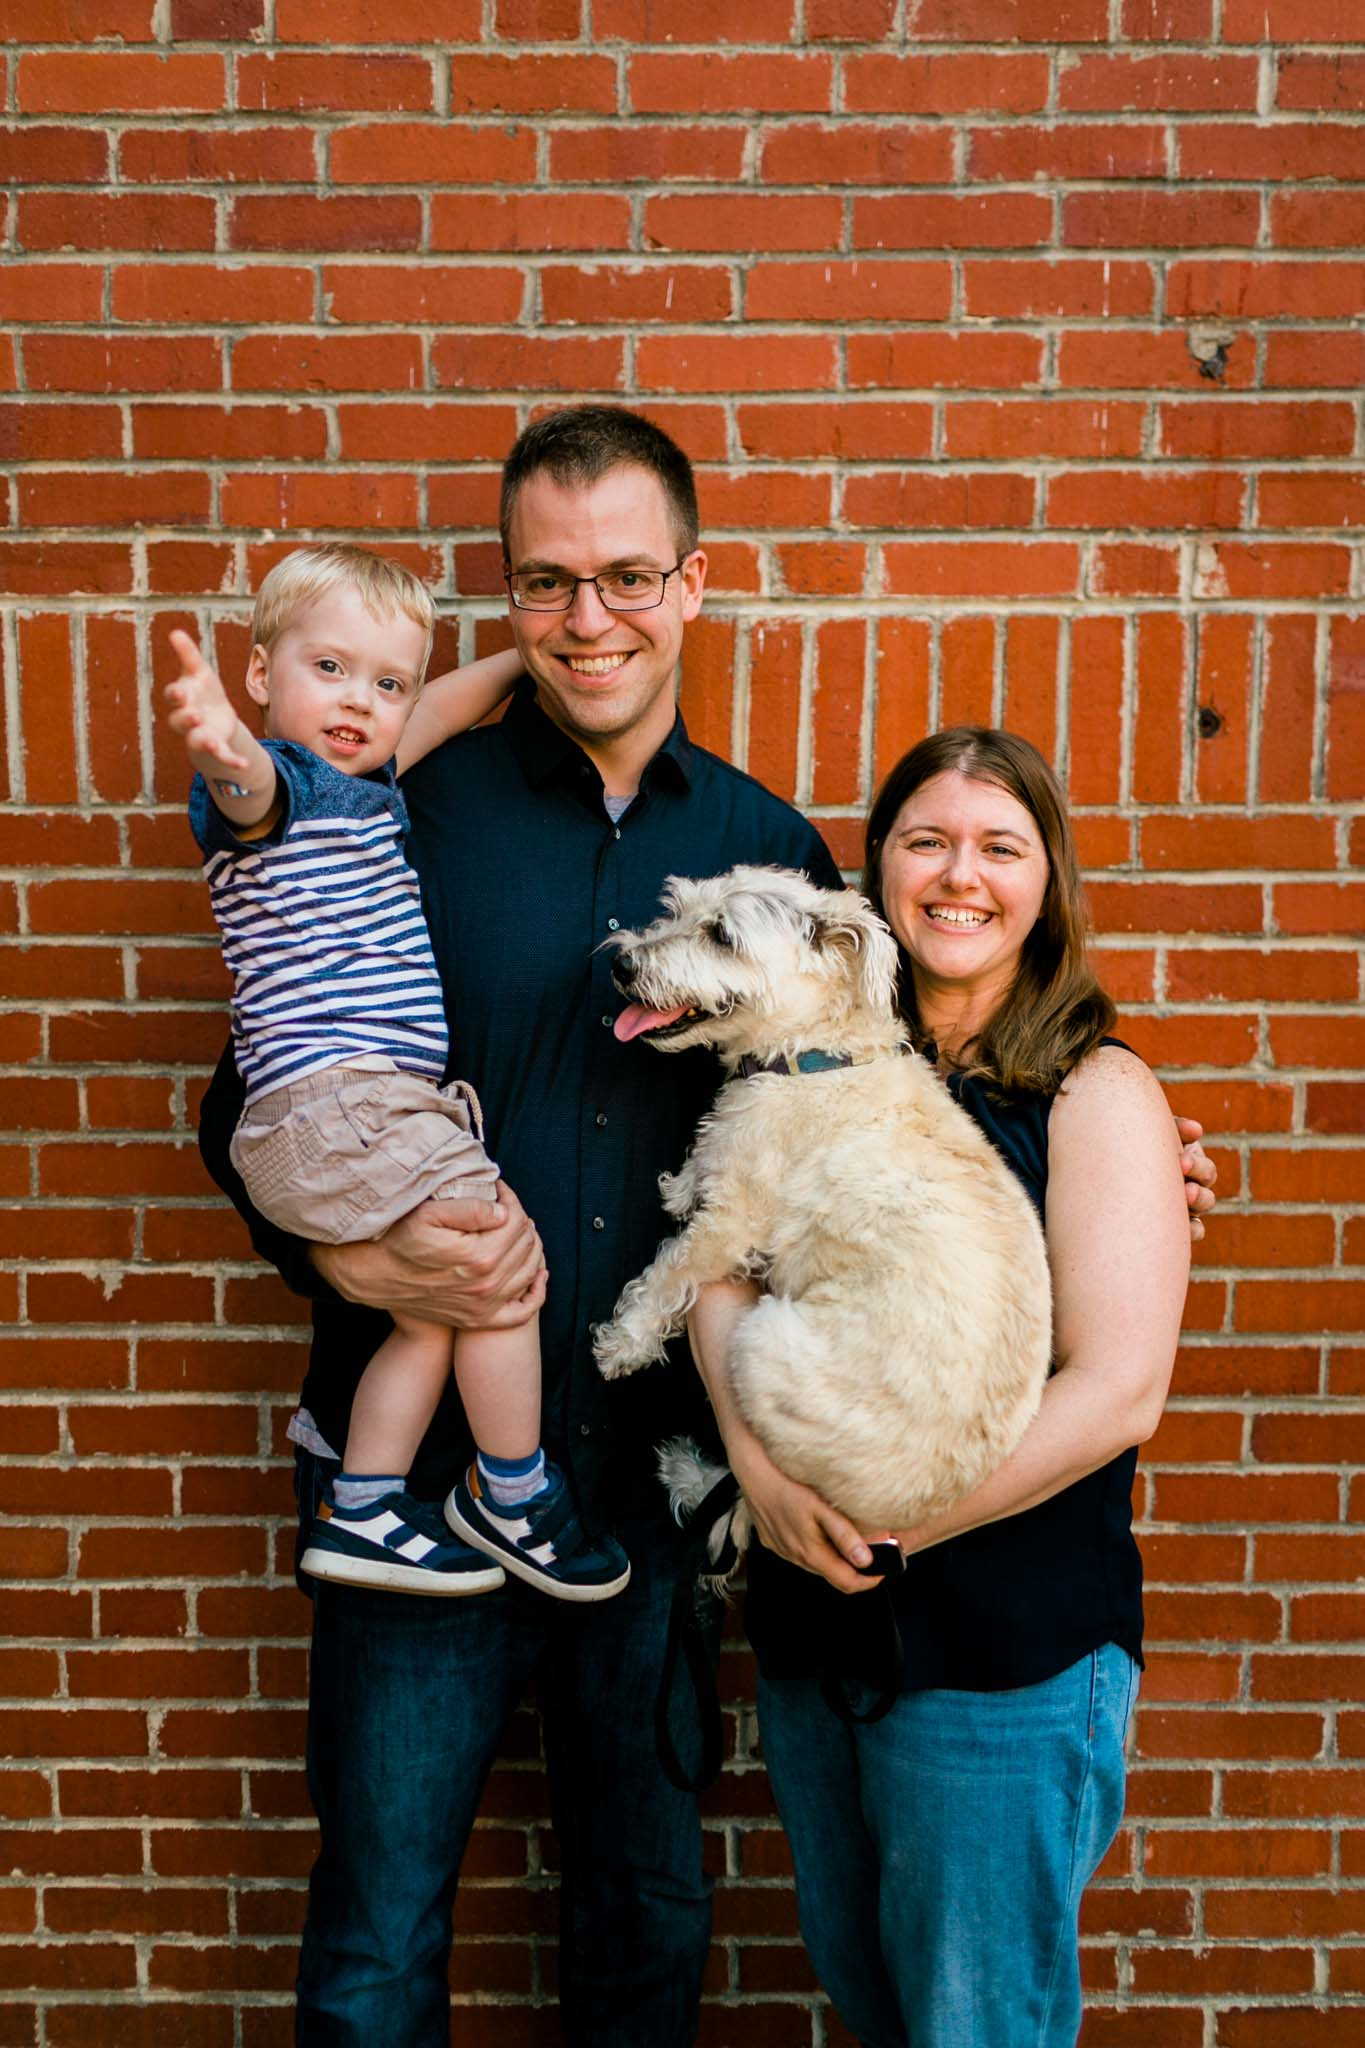 Candid family photo at American Tobacco Campus   Durham Family Photographer   By G. Lin Photography